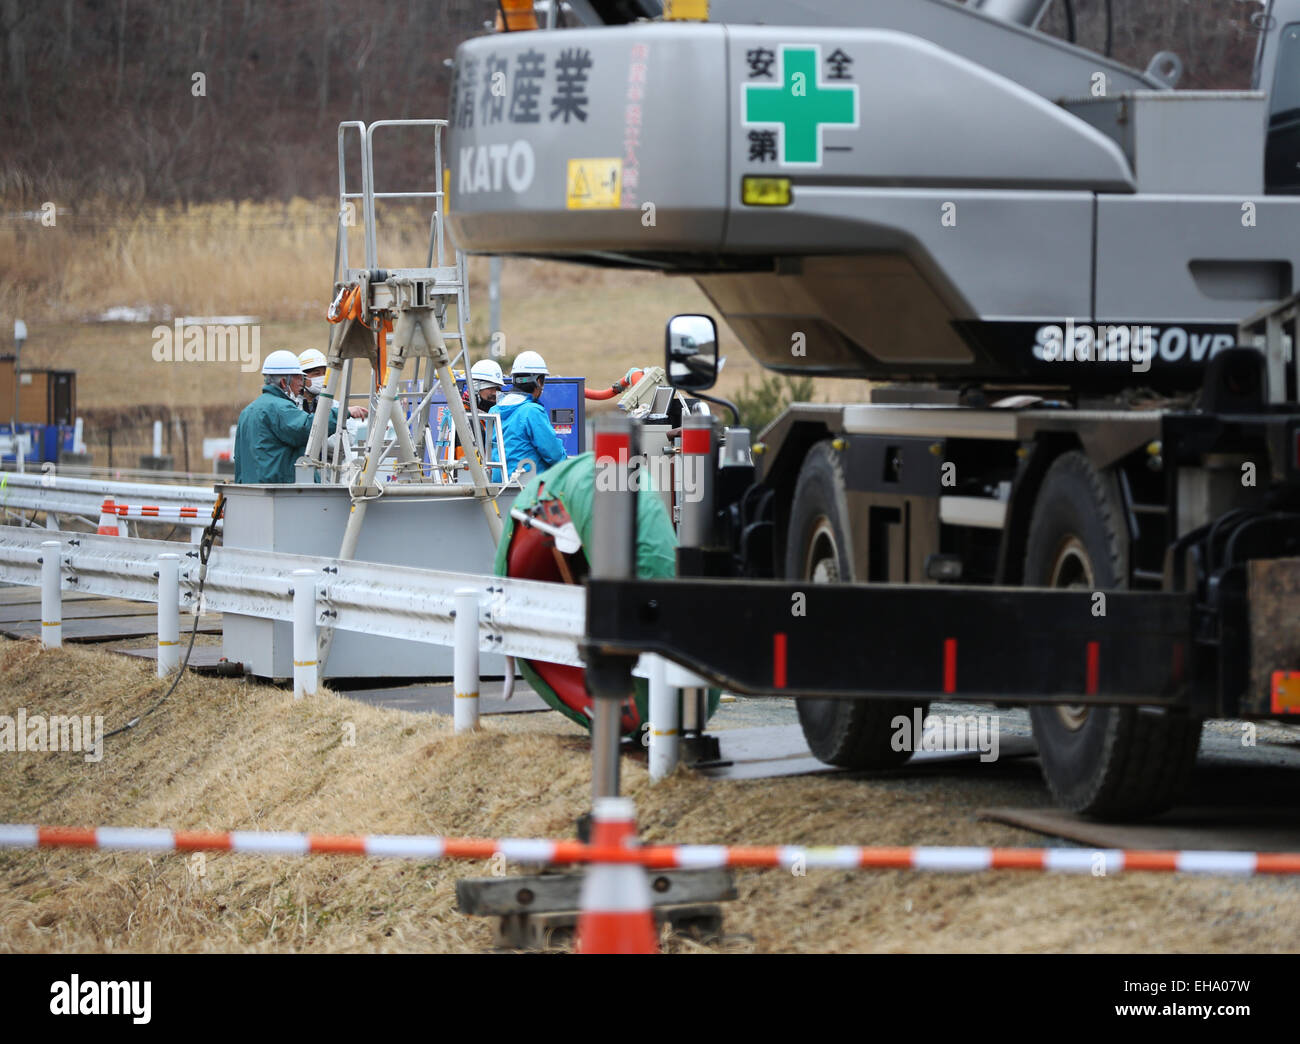 (150310) -- FUKUSHIMA, March 10, 2015 (Xinhua) -- Workers are seen behind large equipment in the town of Iitate, - Stock Image